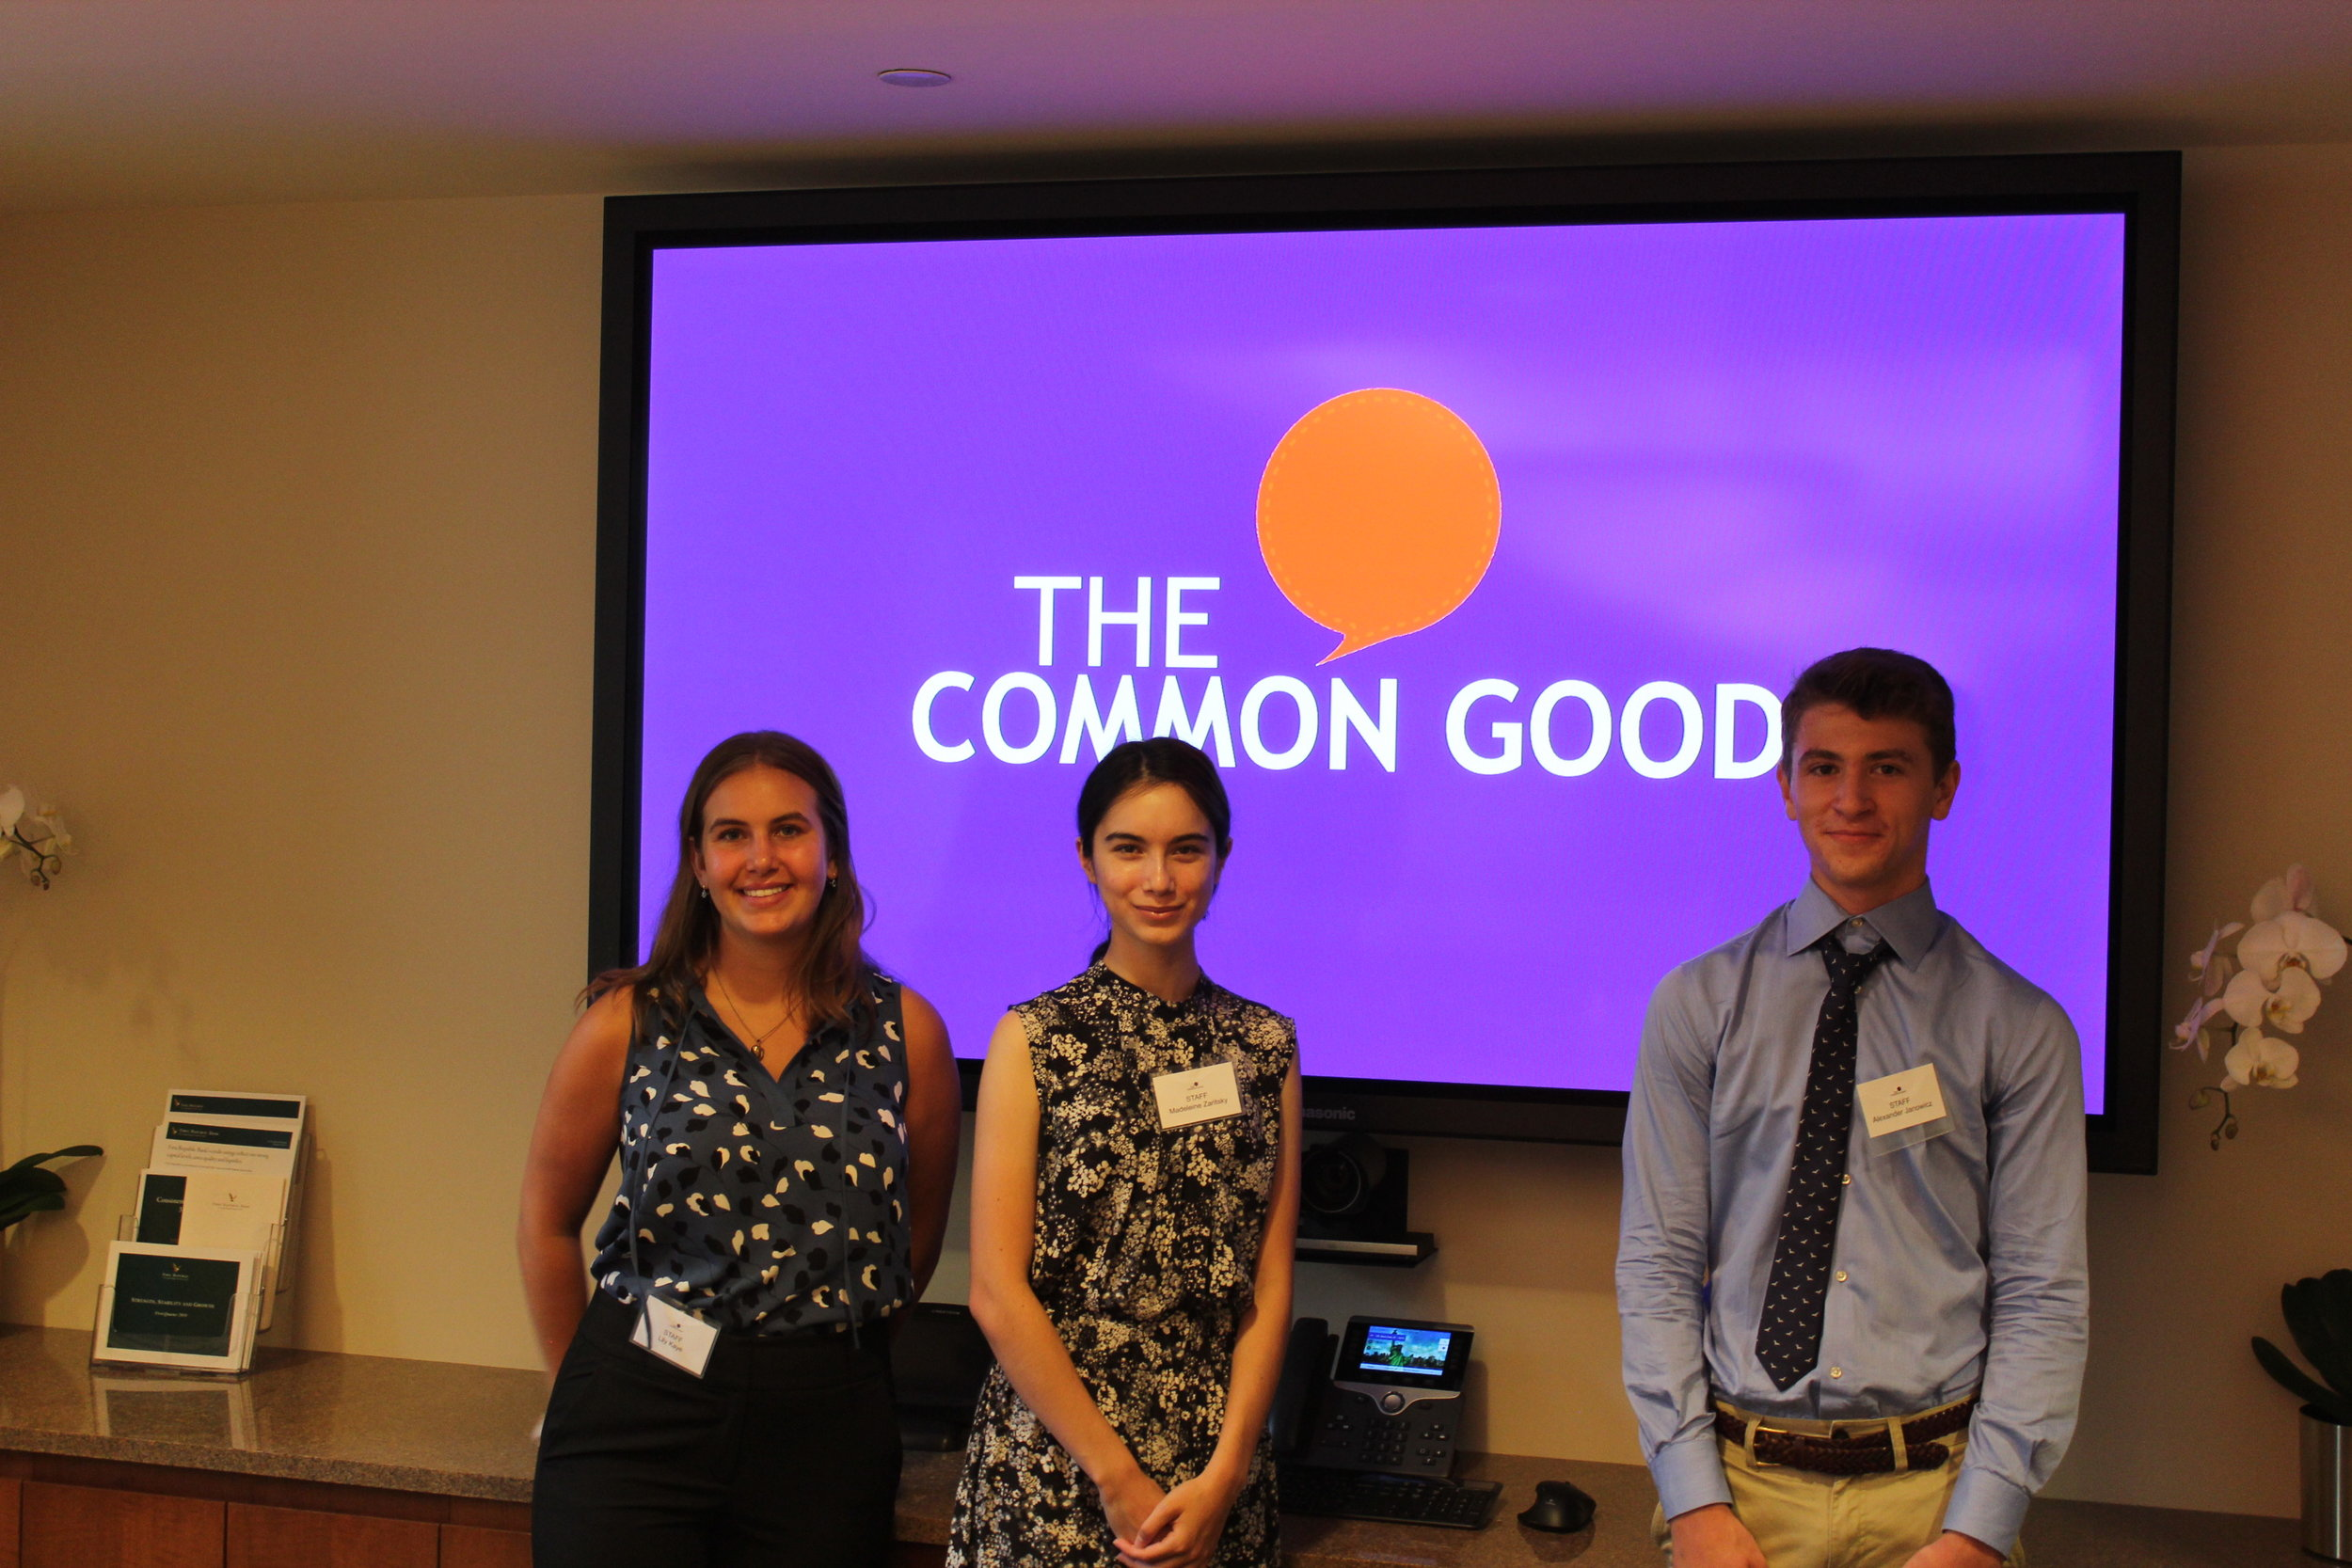 We hope our interns will form friendships and grow professionally while working at The Common Good, expanding their network and growing from each other.